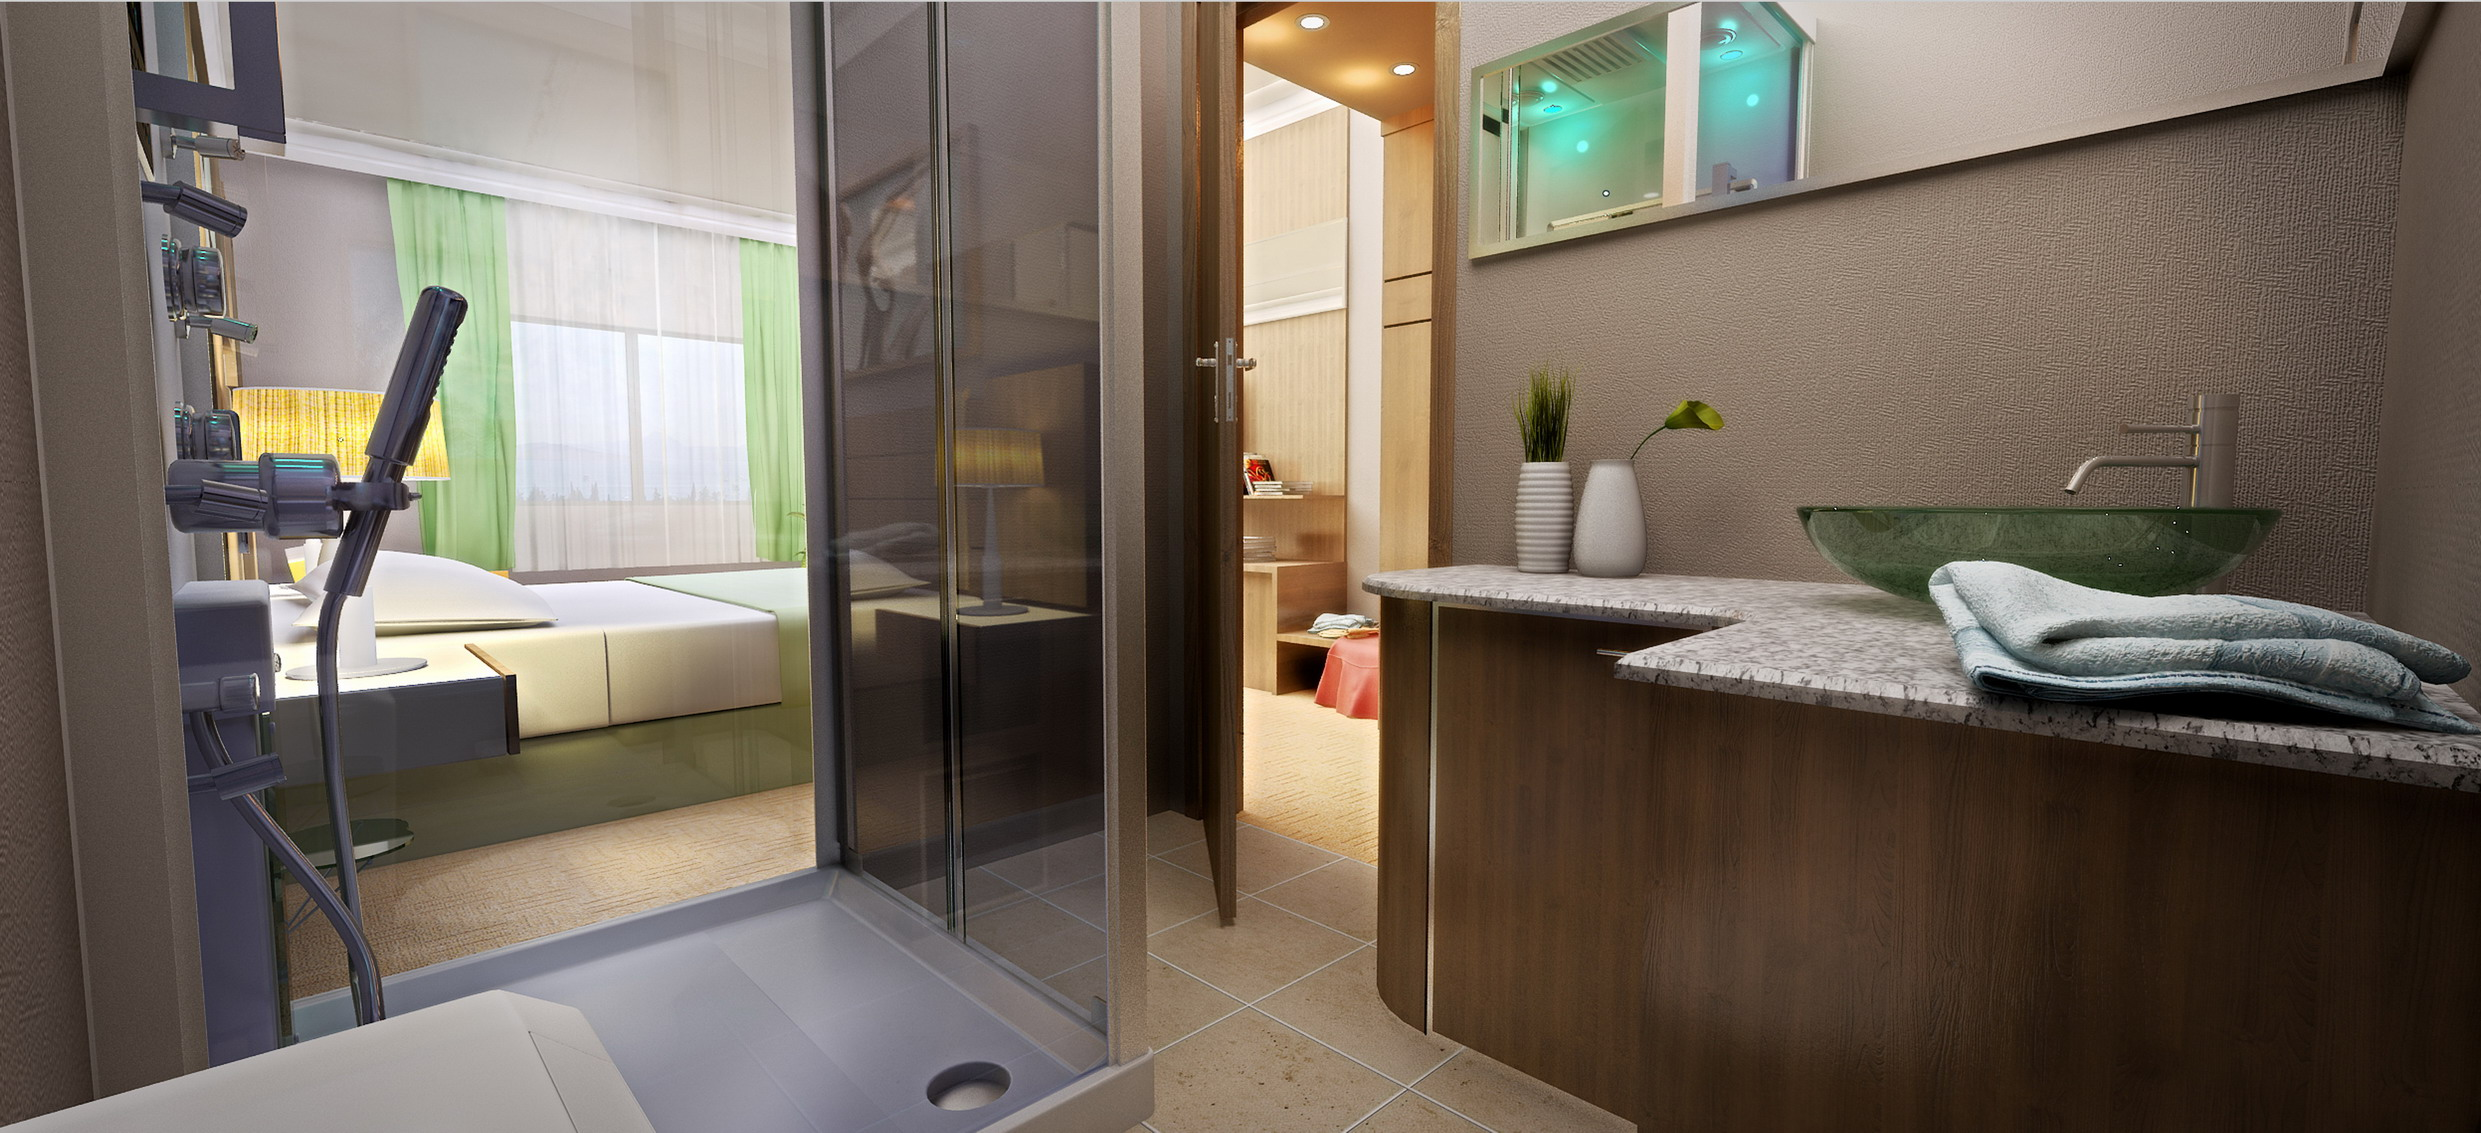 hotel bathroom rendering